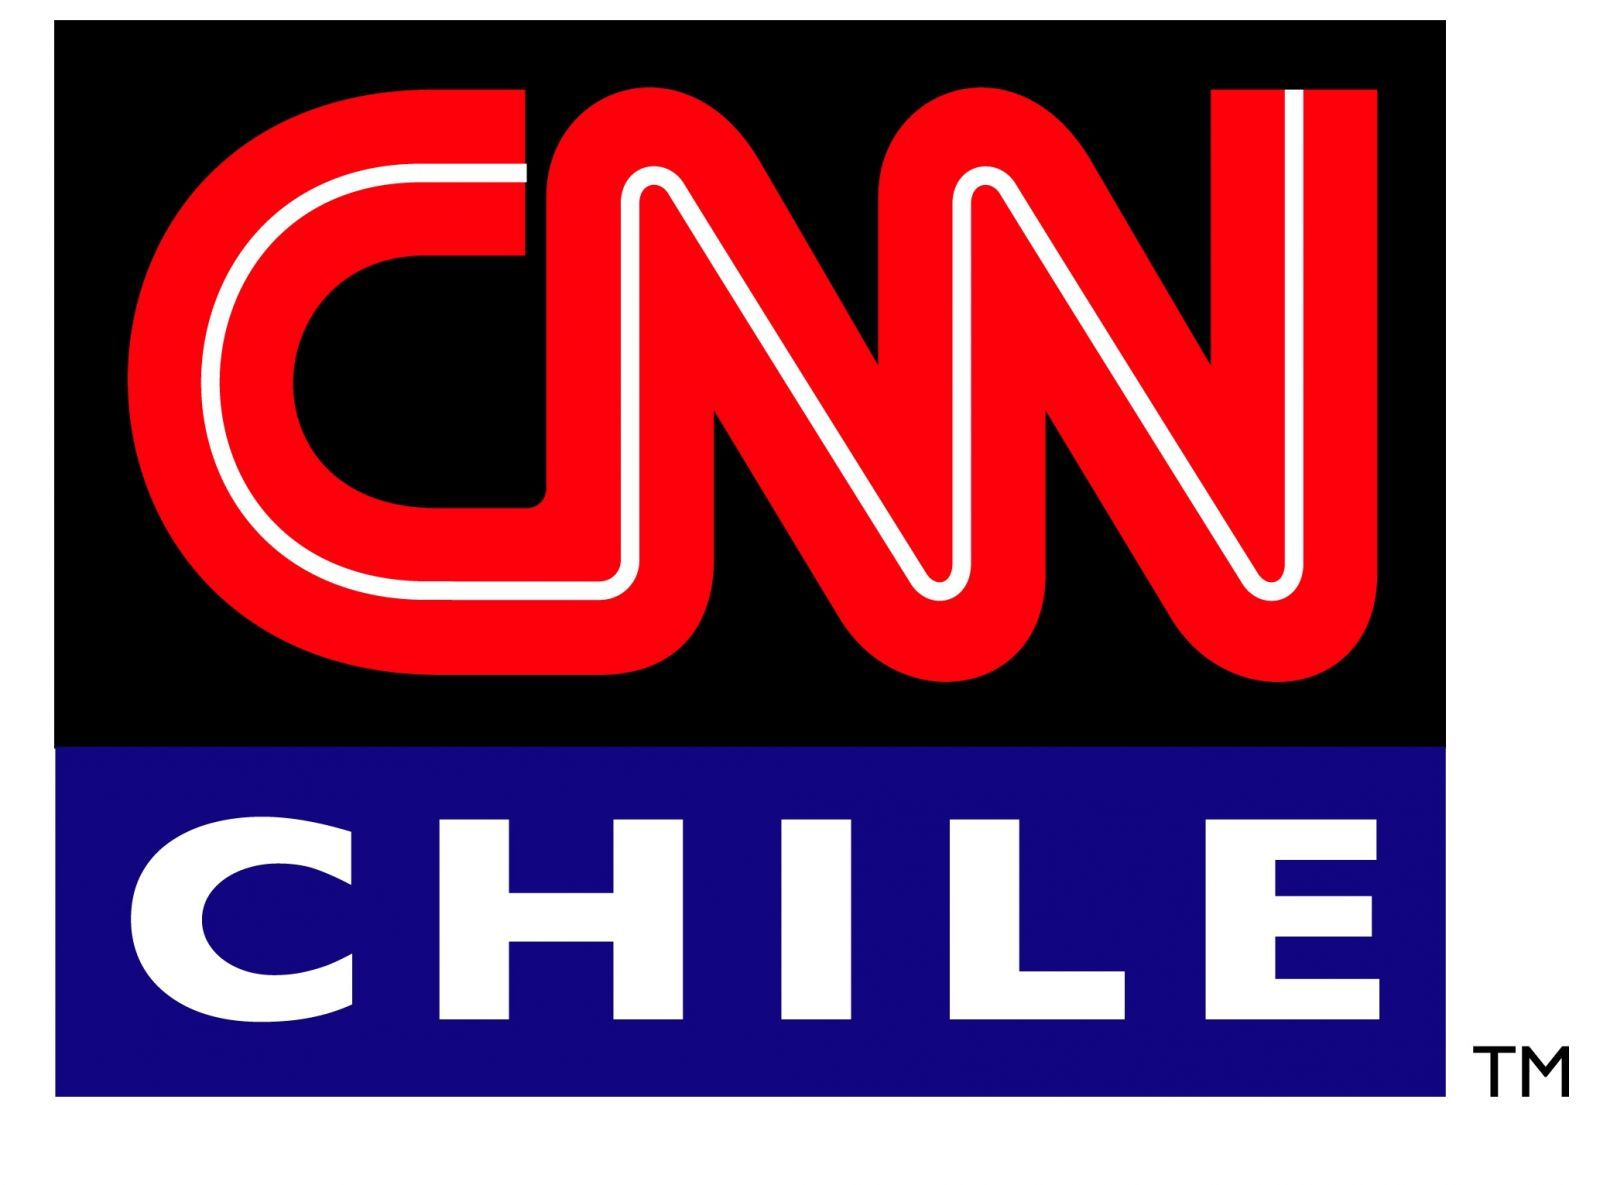 Chilean News Outlet Cnn Chile